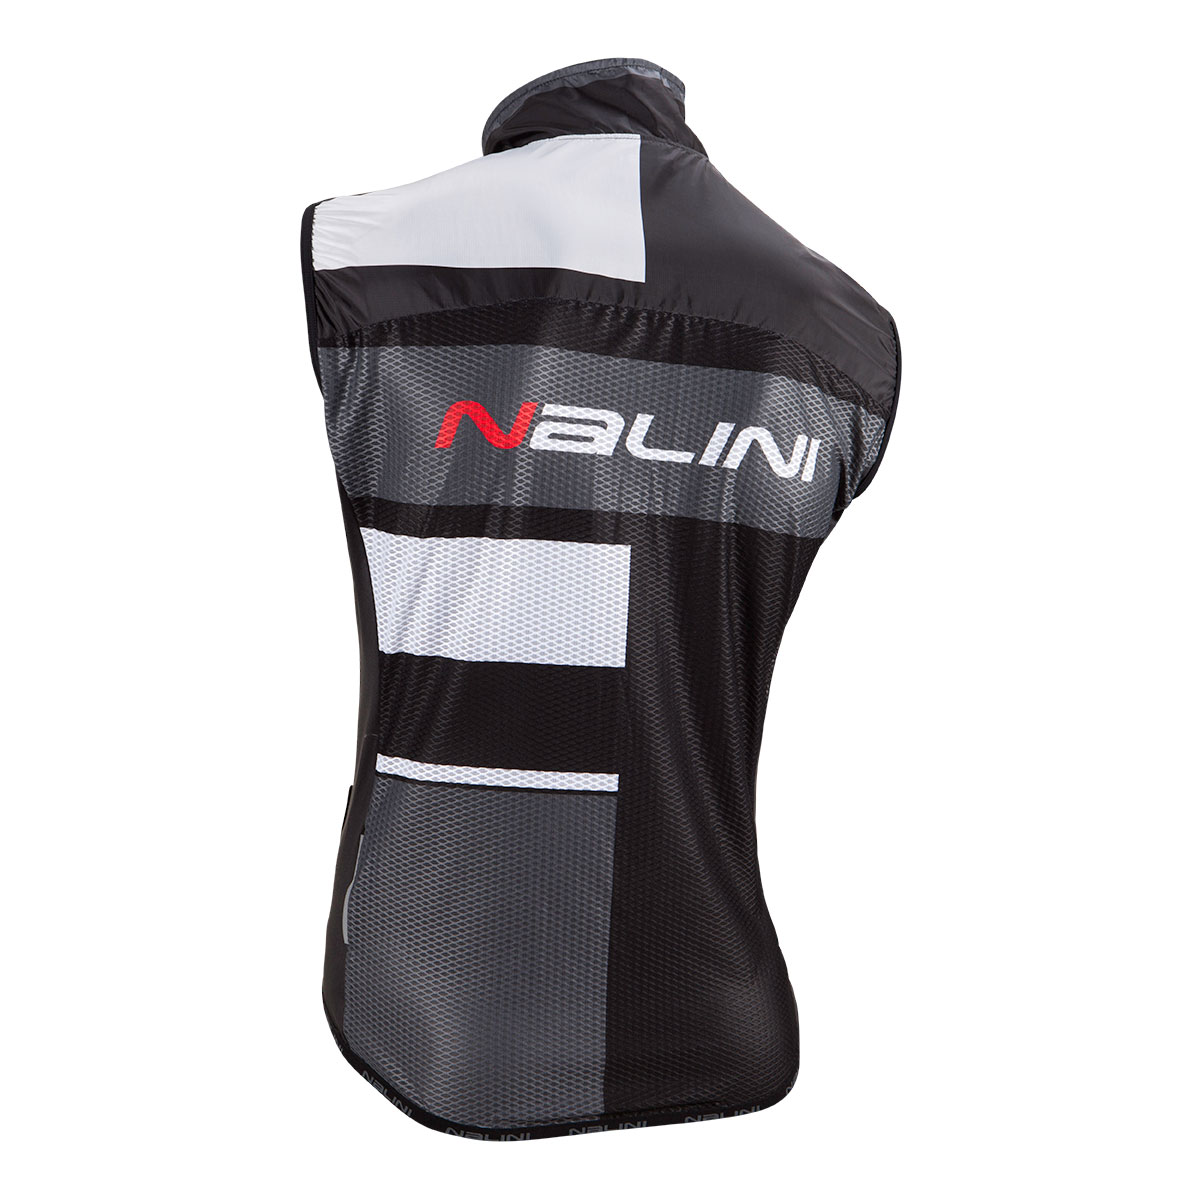 Nalini cycling apparel  a high degree of functionality